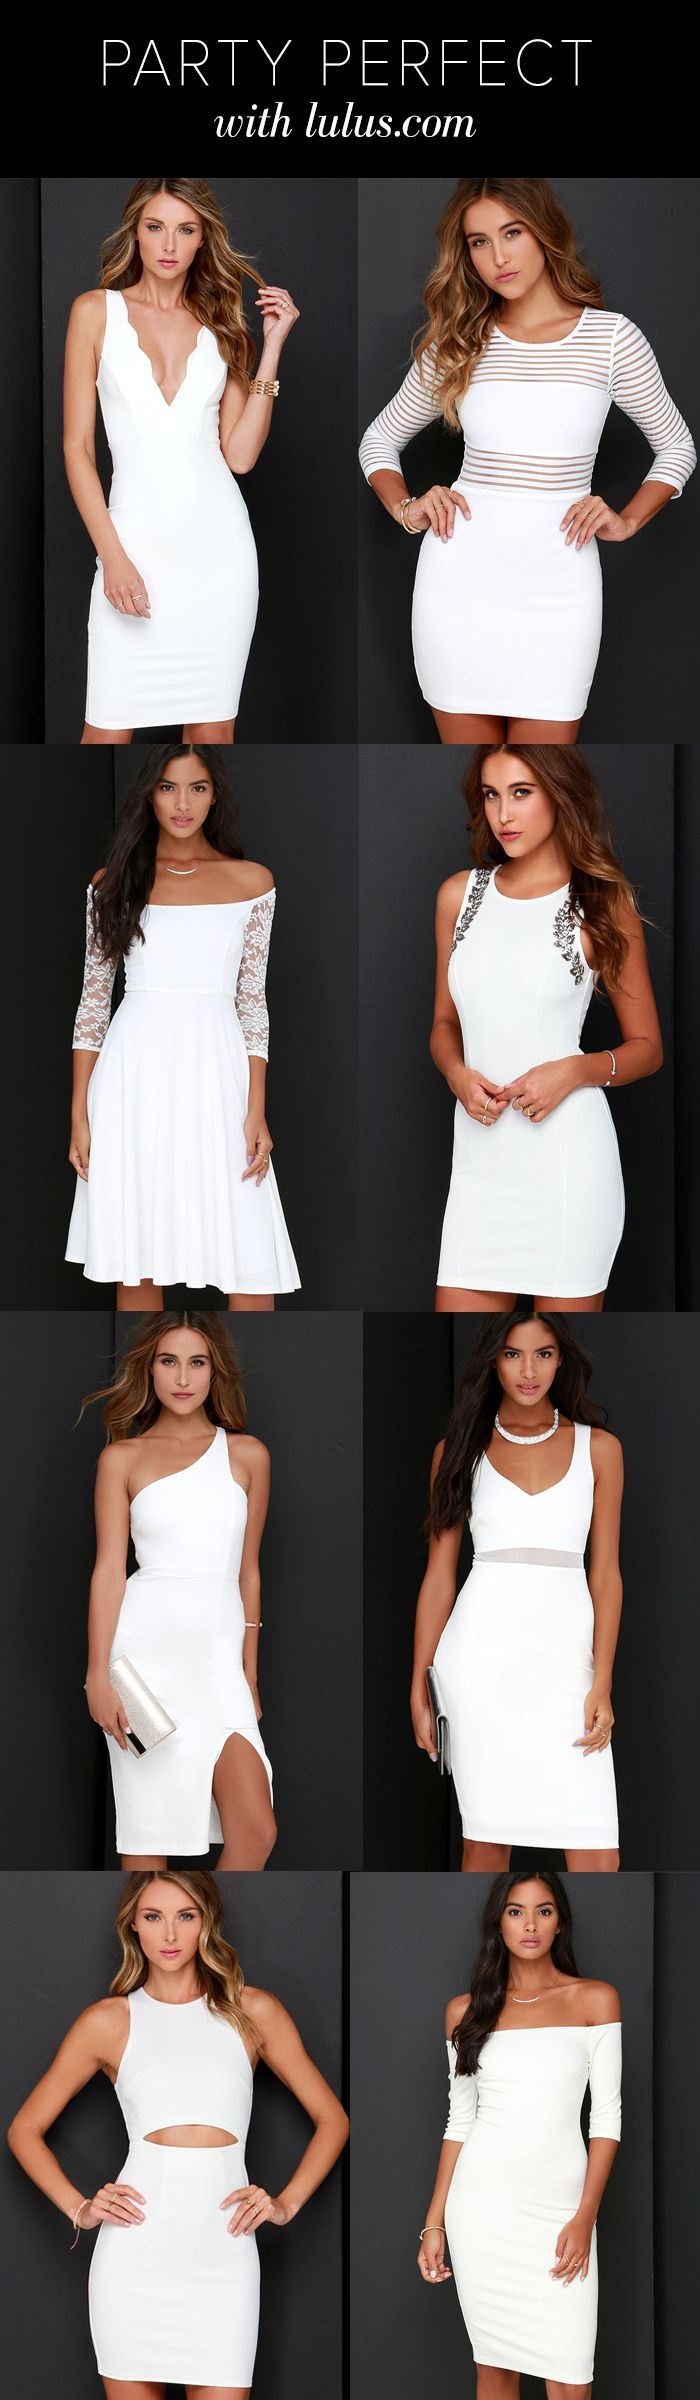 best images about snatched fashion boutique on pinterest